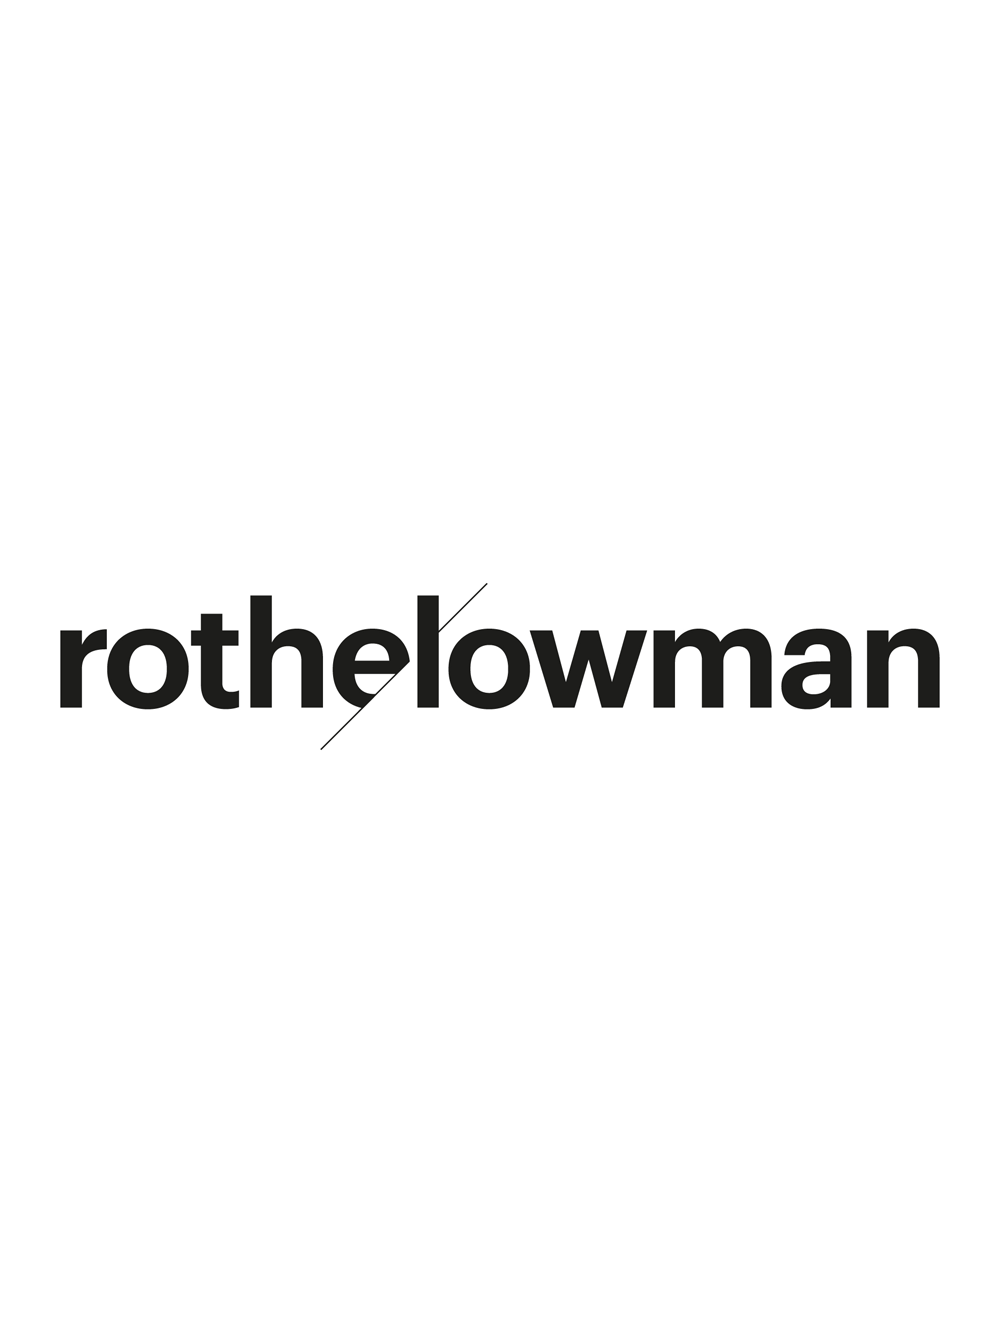 rothelowman_1000x1333.png